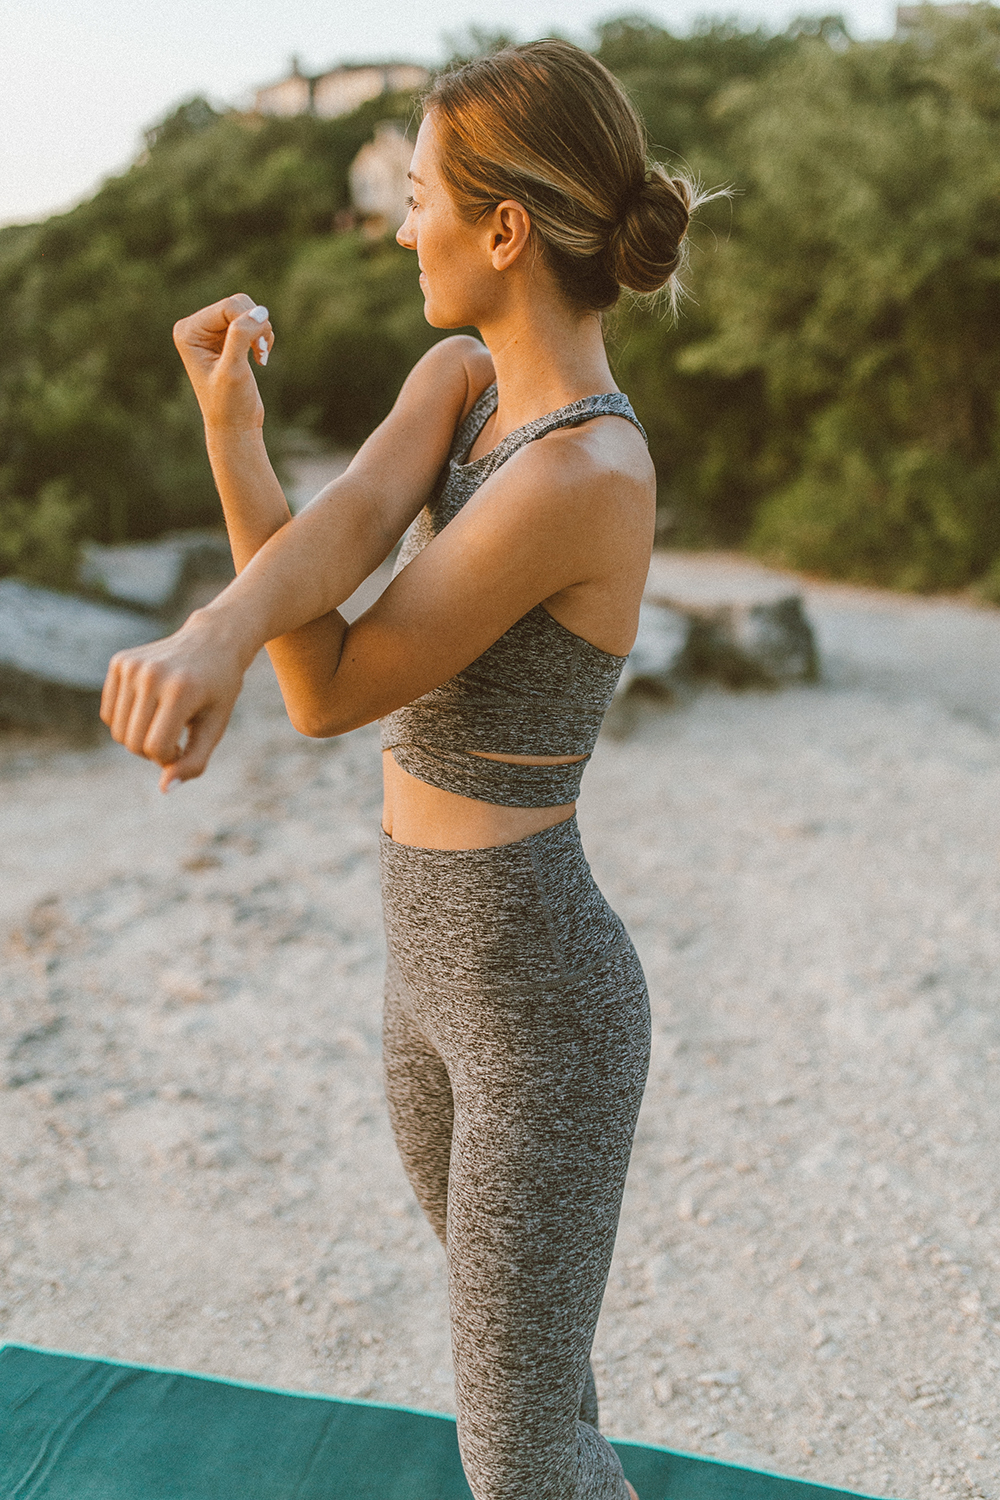 livvyland-blog-olivia-watson-austin-texas-mount-bonnell-yoga-backcountry-beyond-yoga-spacedye-leggings-sports-bra-1